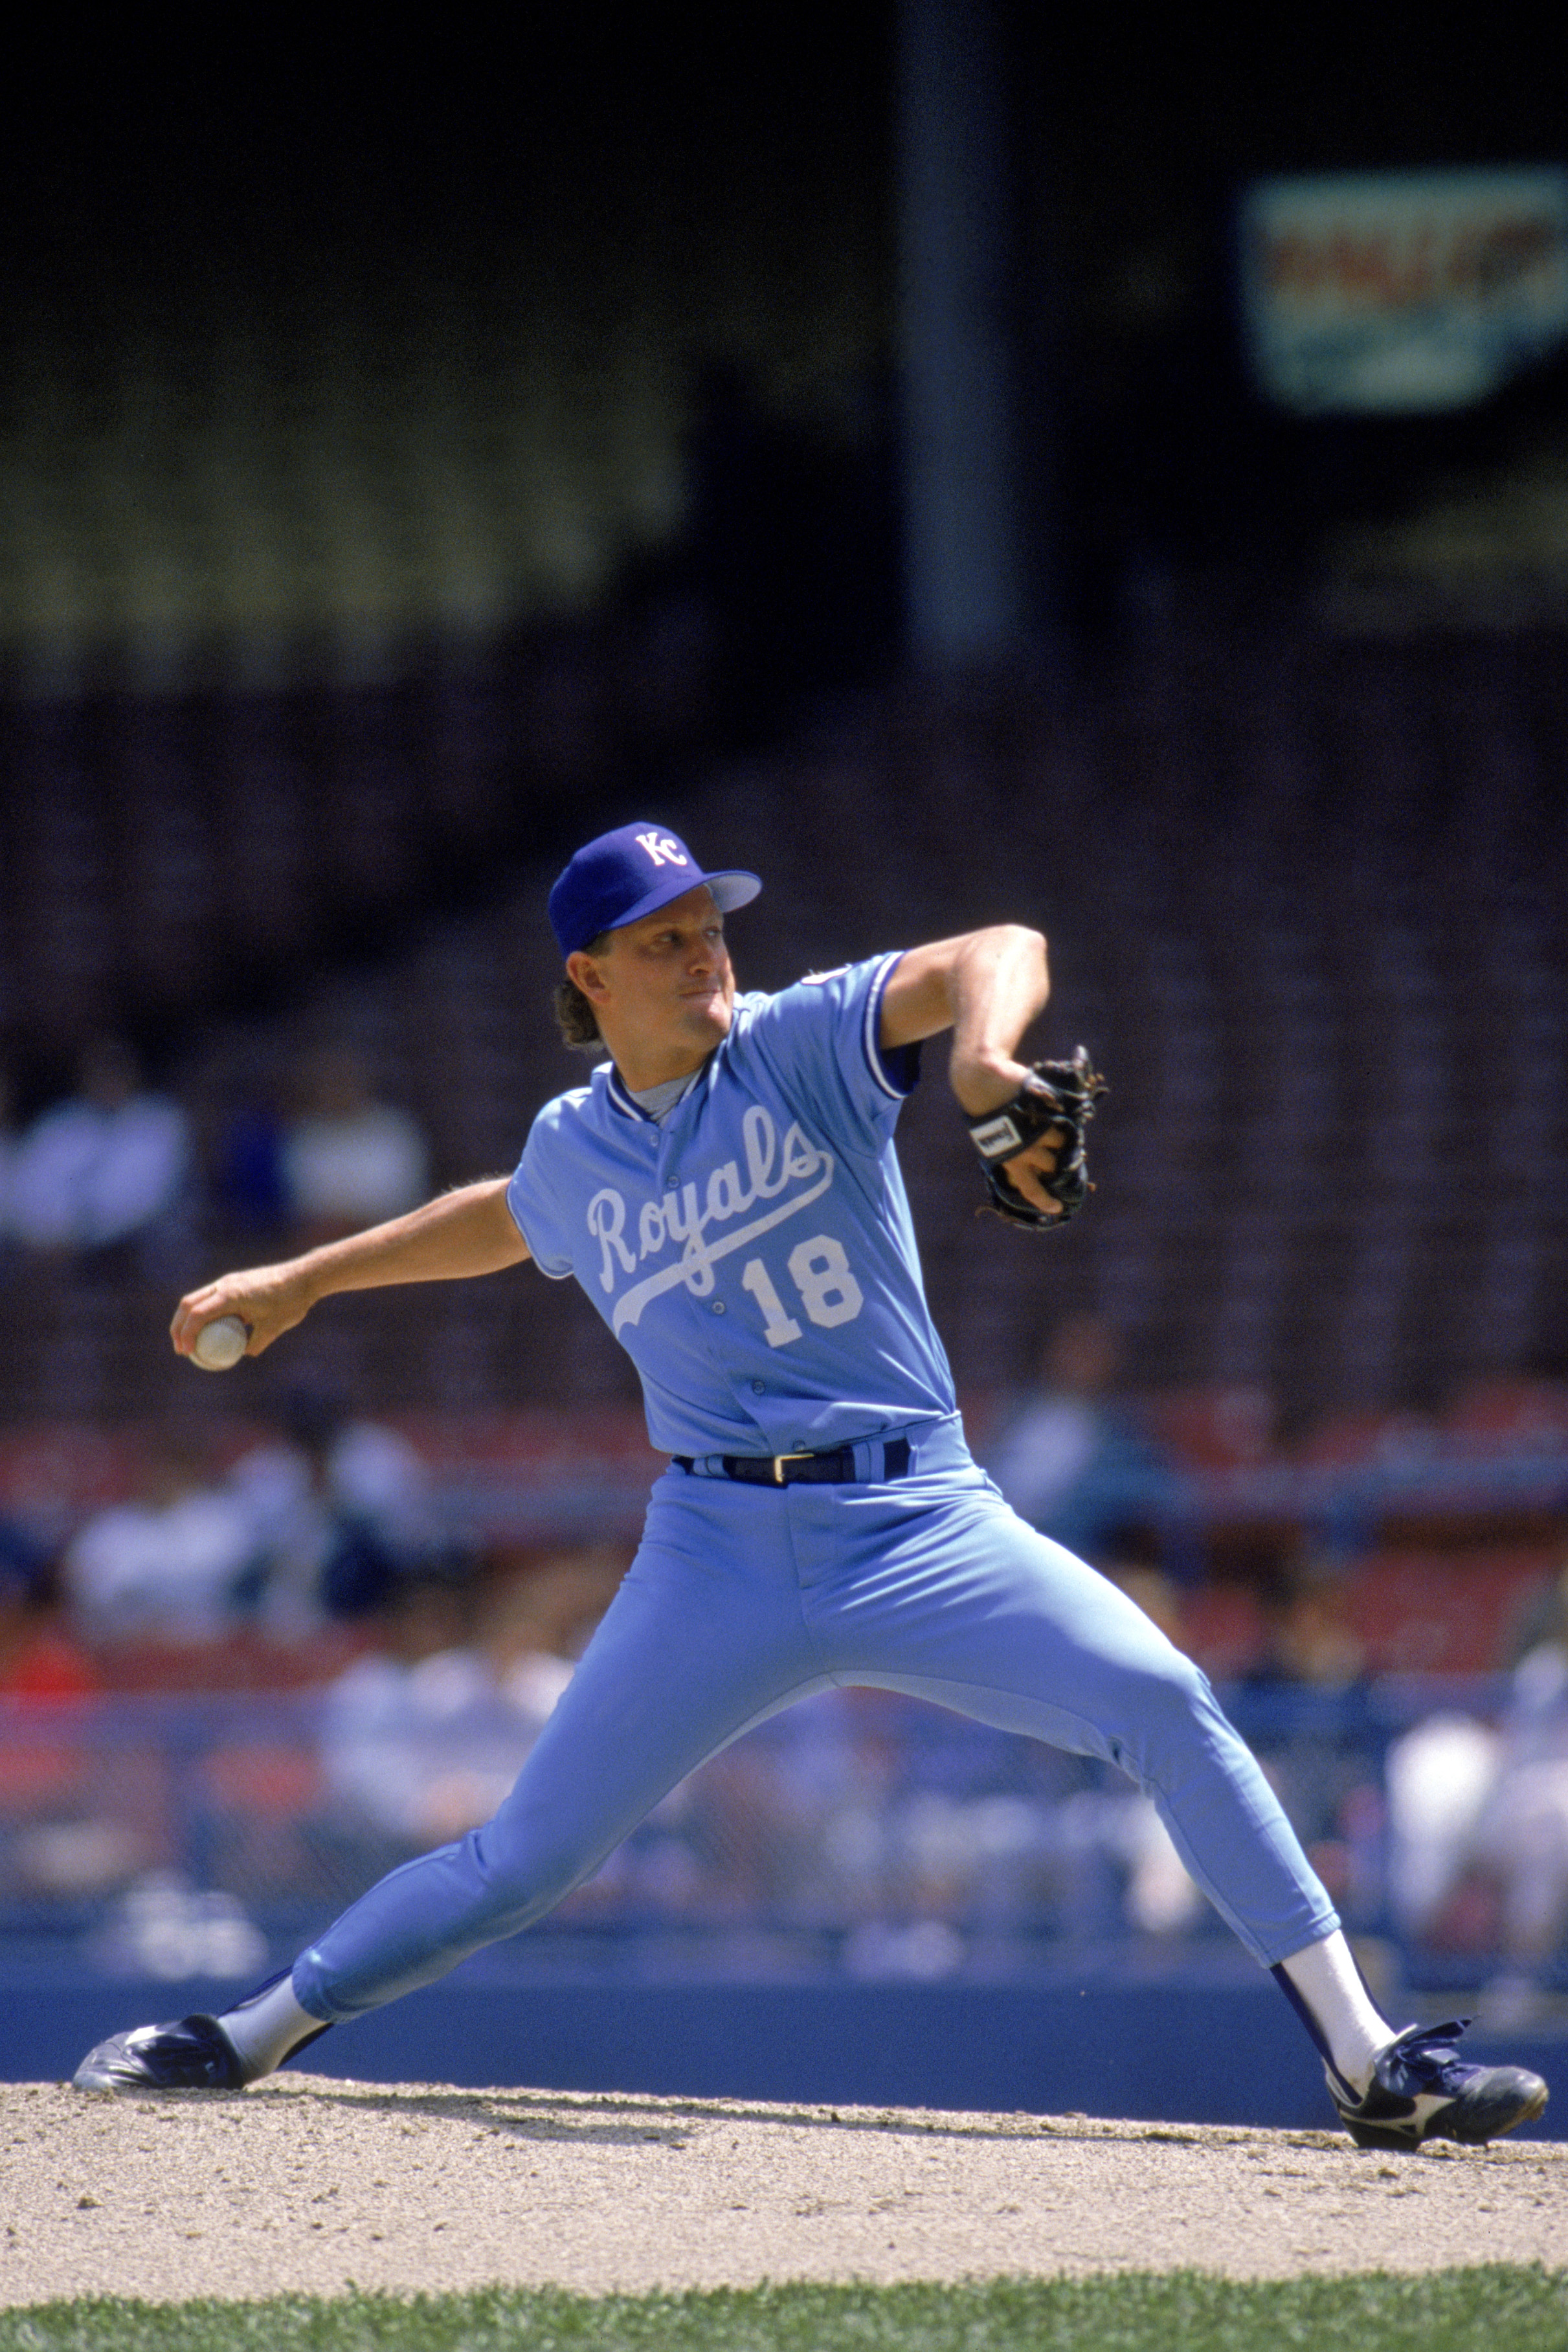 1989:  Bret Saberhagen #31 of the Kansas City Royals delivers a pitch during a game in 1989 season.  (Photo by Rick Stewart/Getty Images)